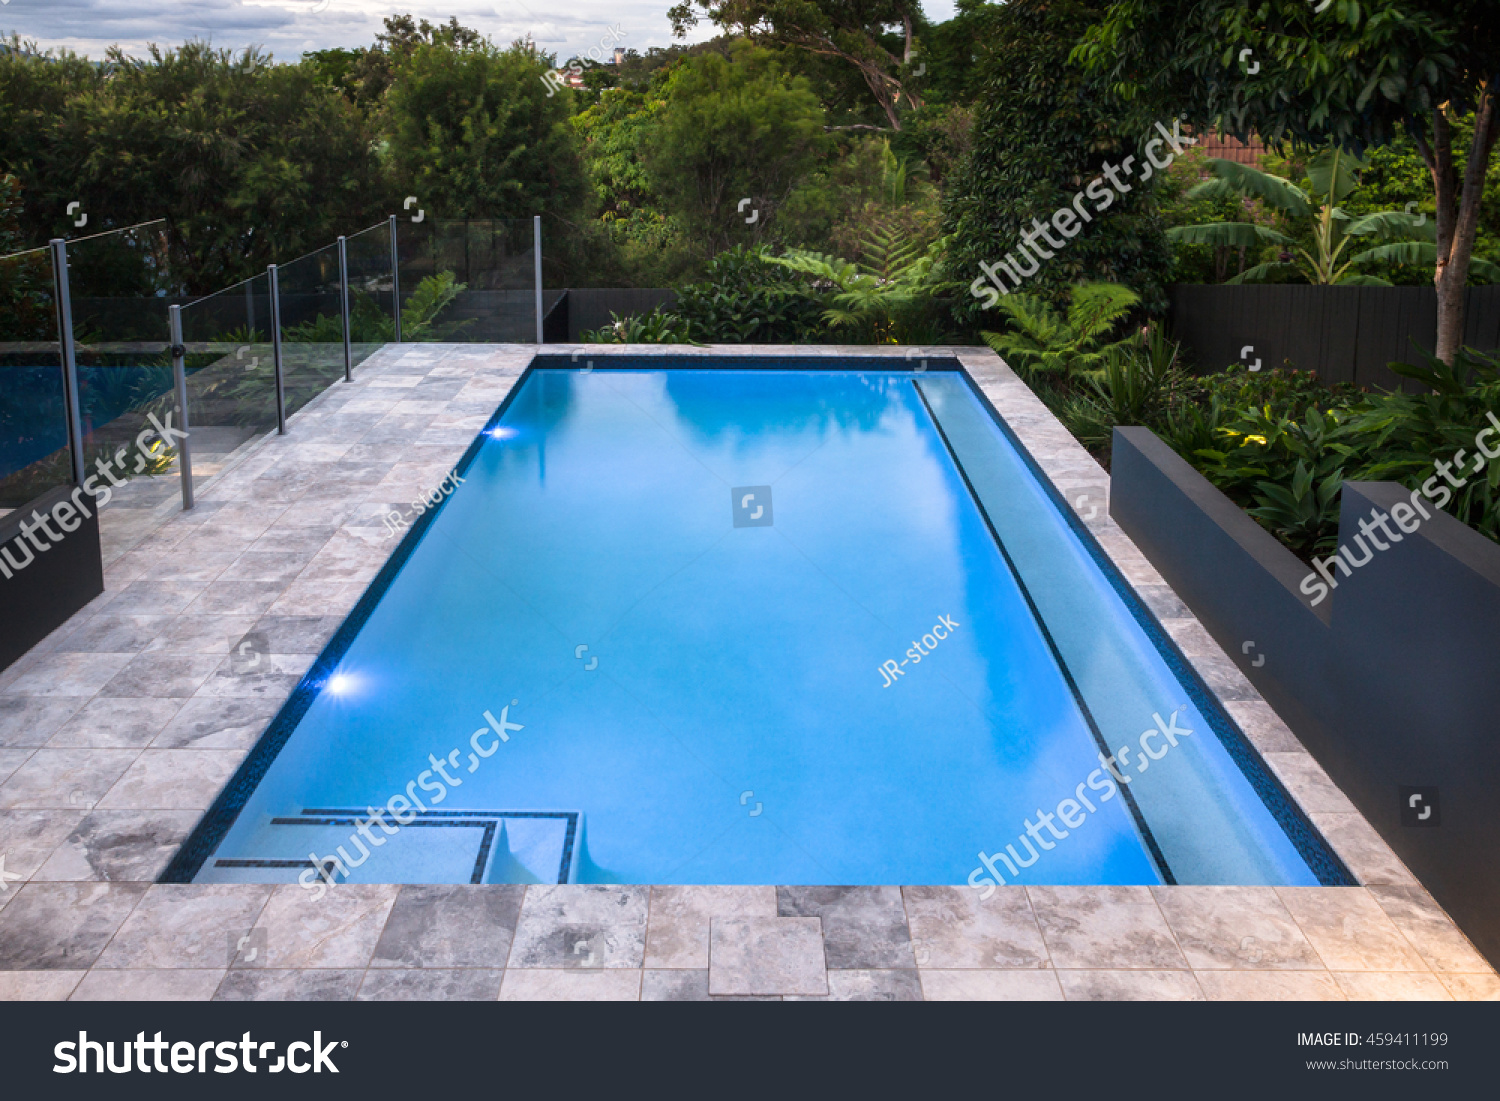 Luxury swimming pool closeup blue water stock photo - How to make swimming pool water blue ...